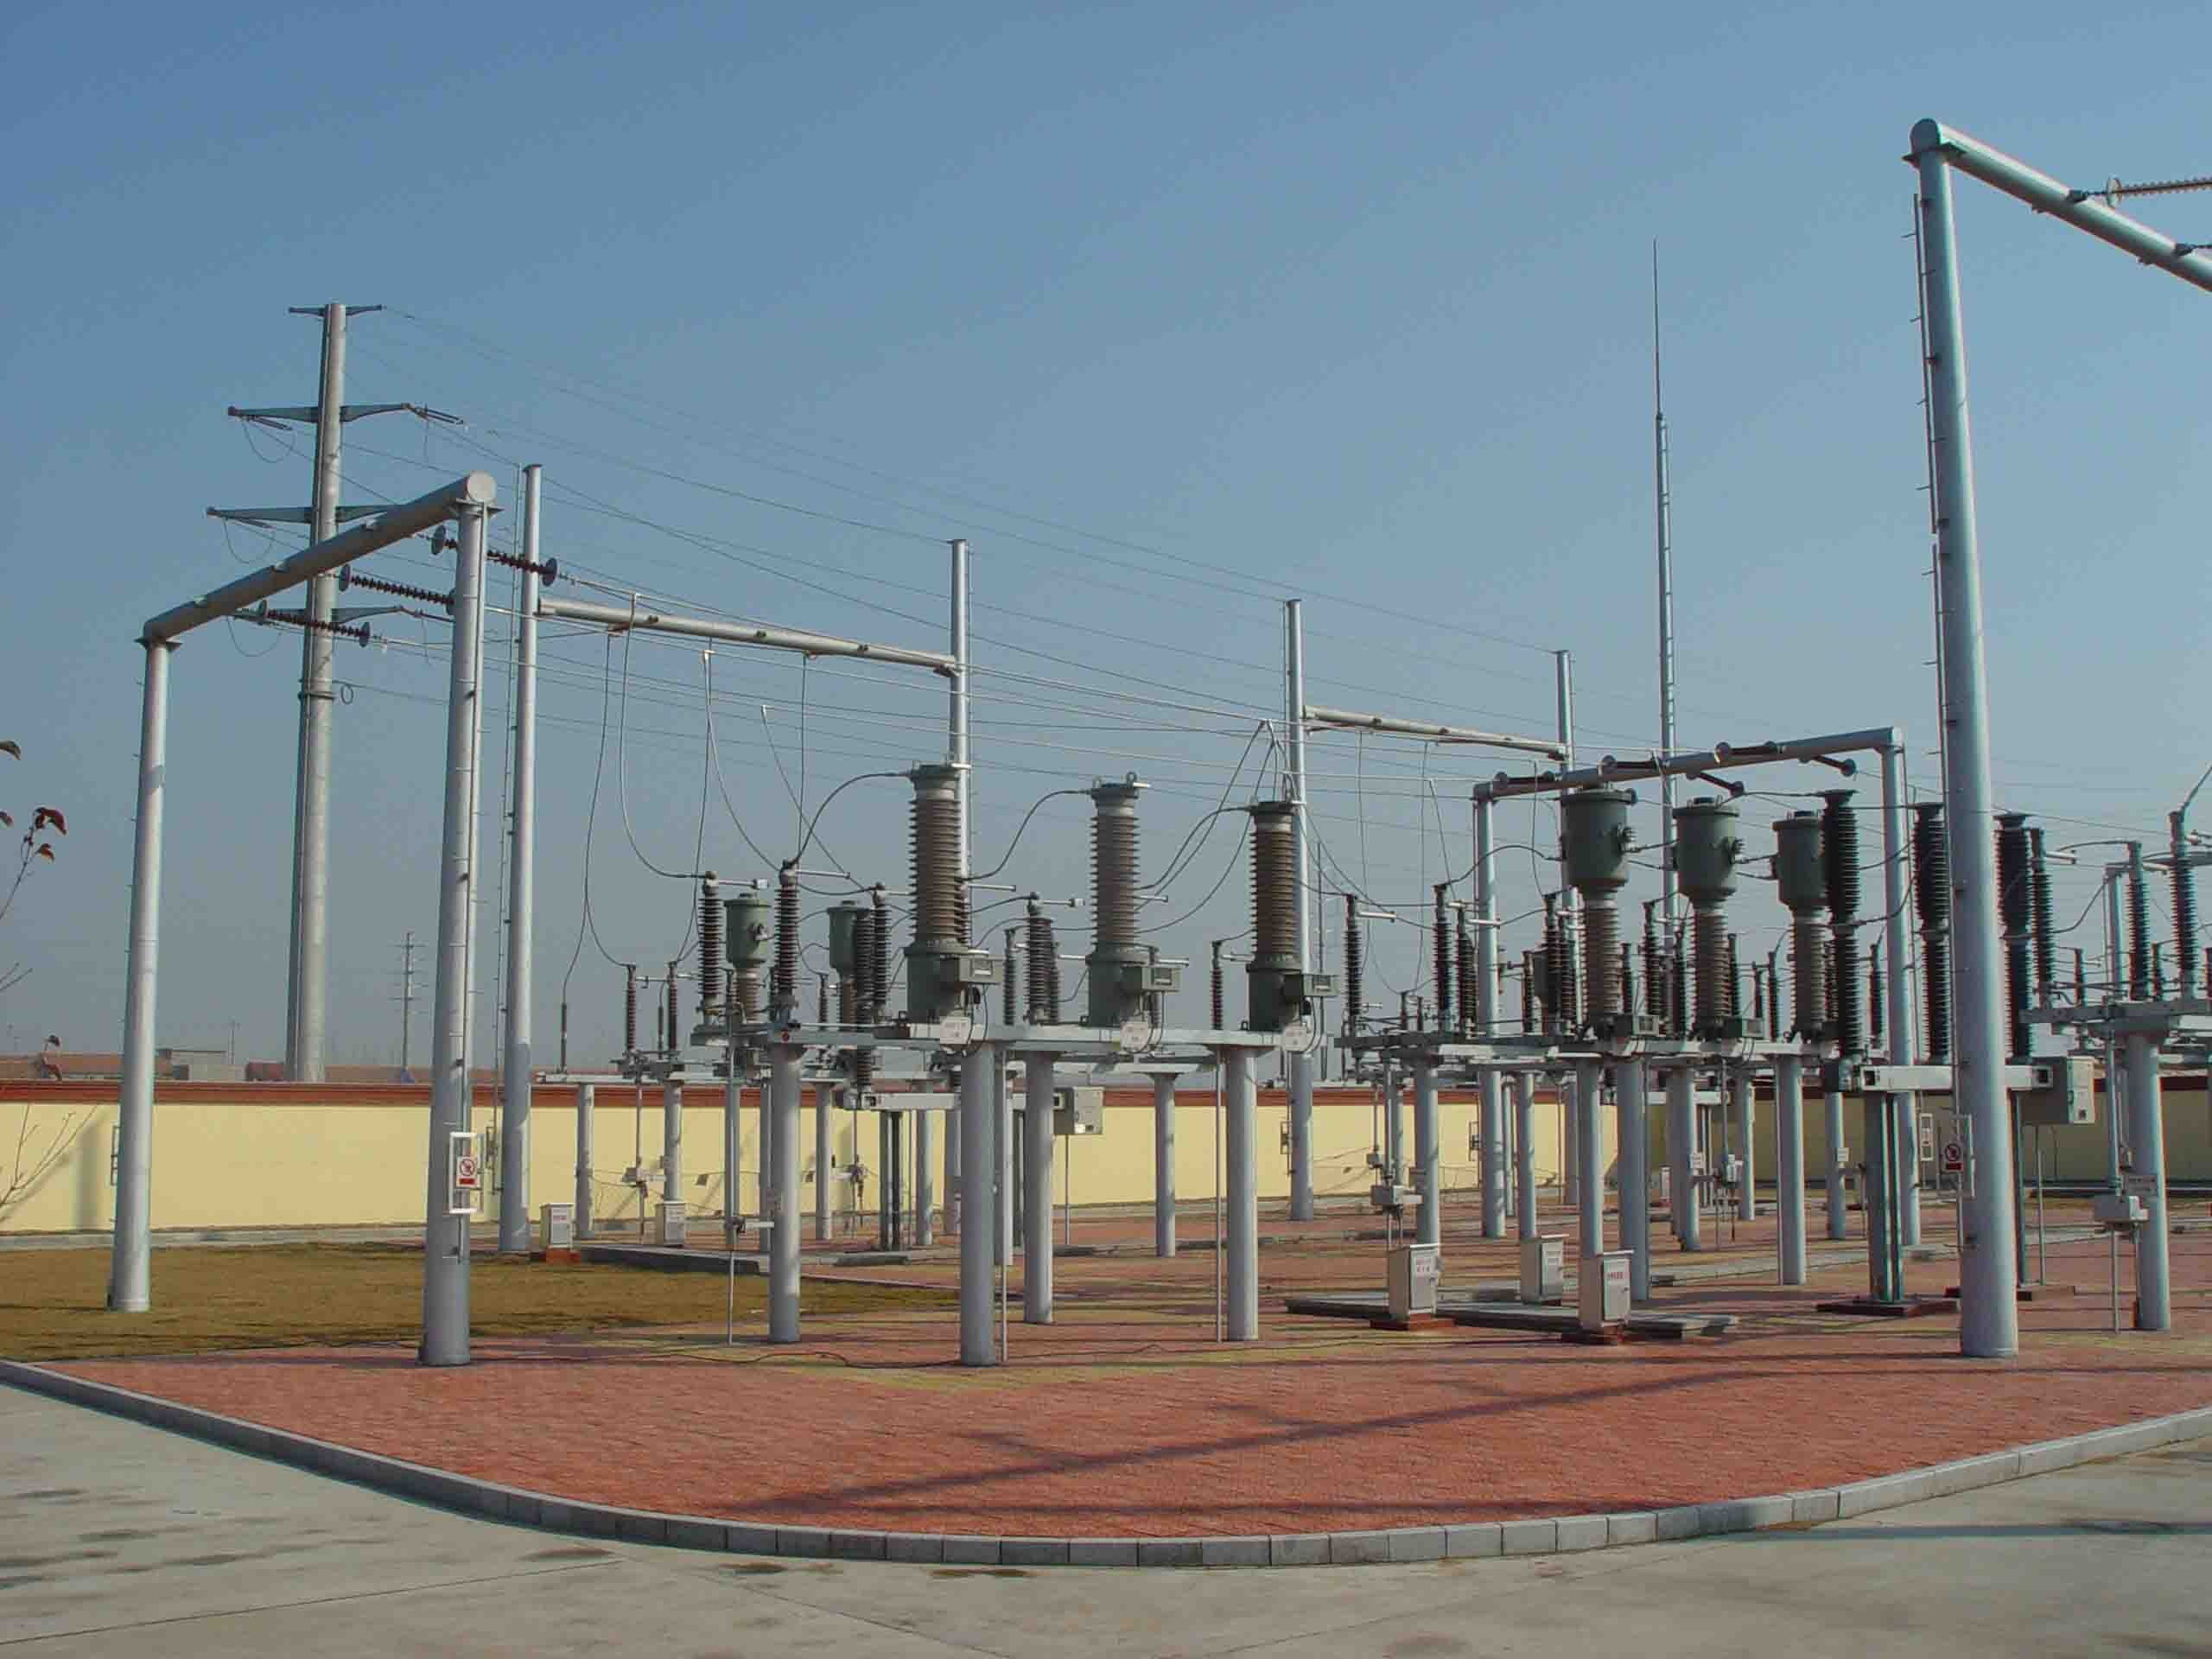 Electrical Substation Stock Photo - Download Image Now